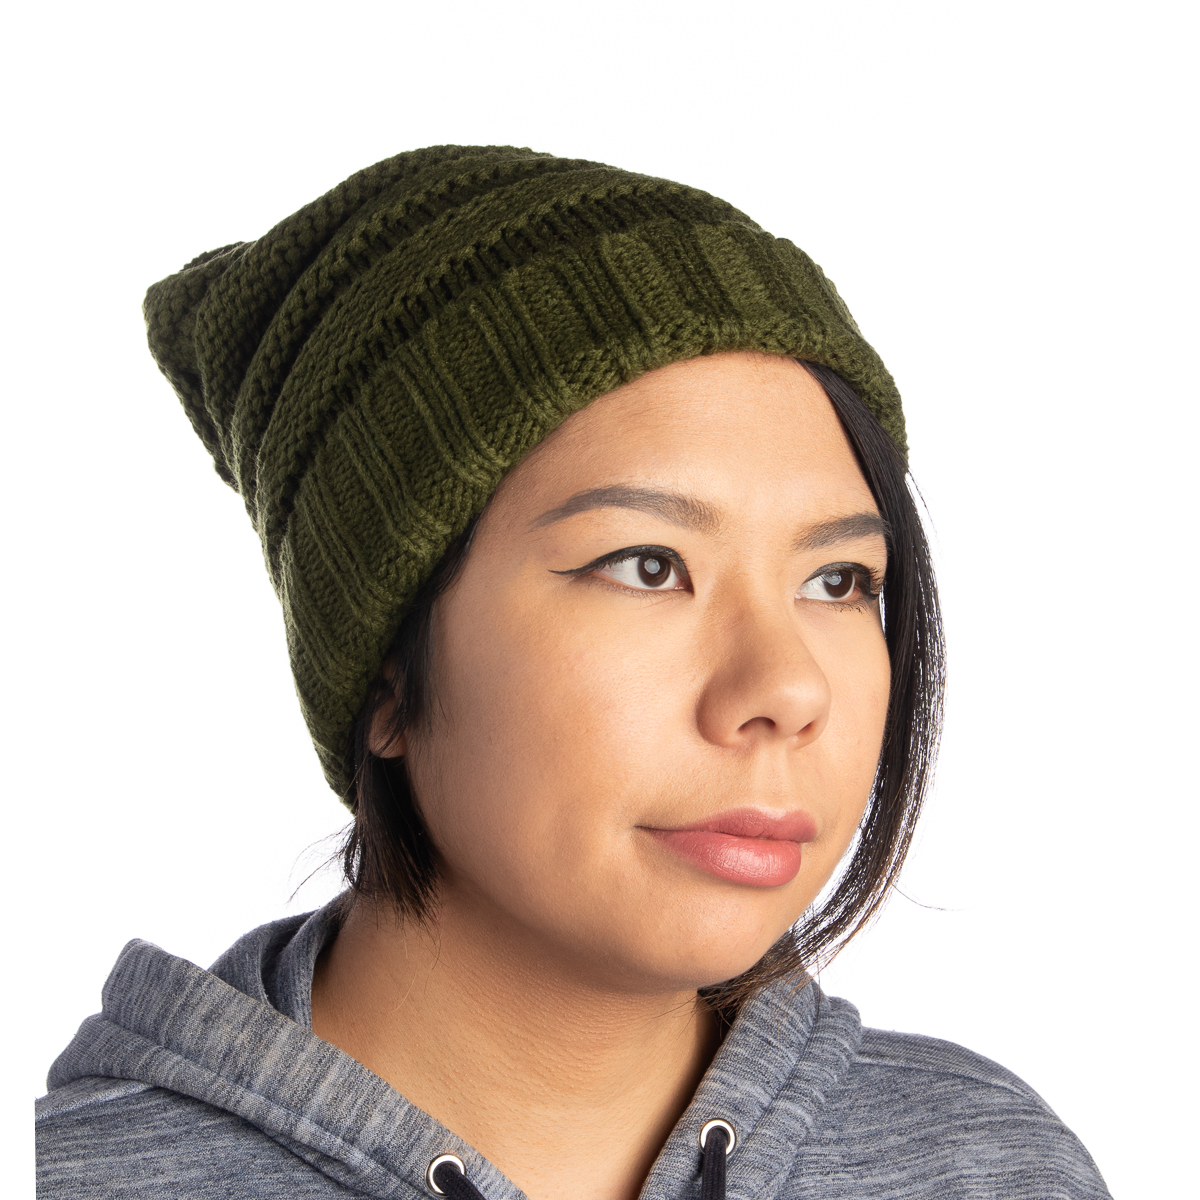 Womens-Slouchy-Ribbed-Knit-Chunky-Beanie-Winter-Hat-Warm-Cute-Lightweight-Chic thumbnail 32